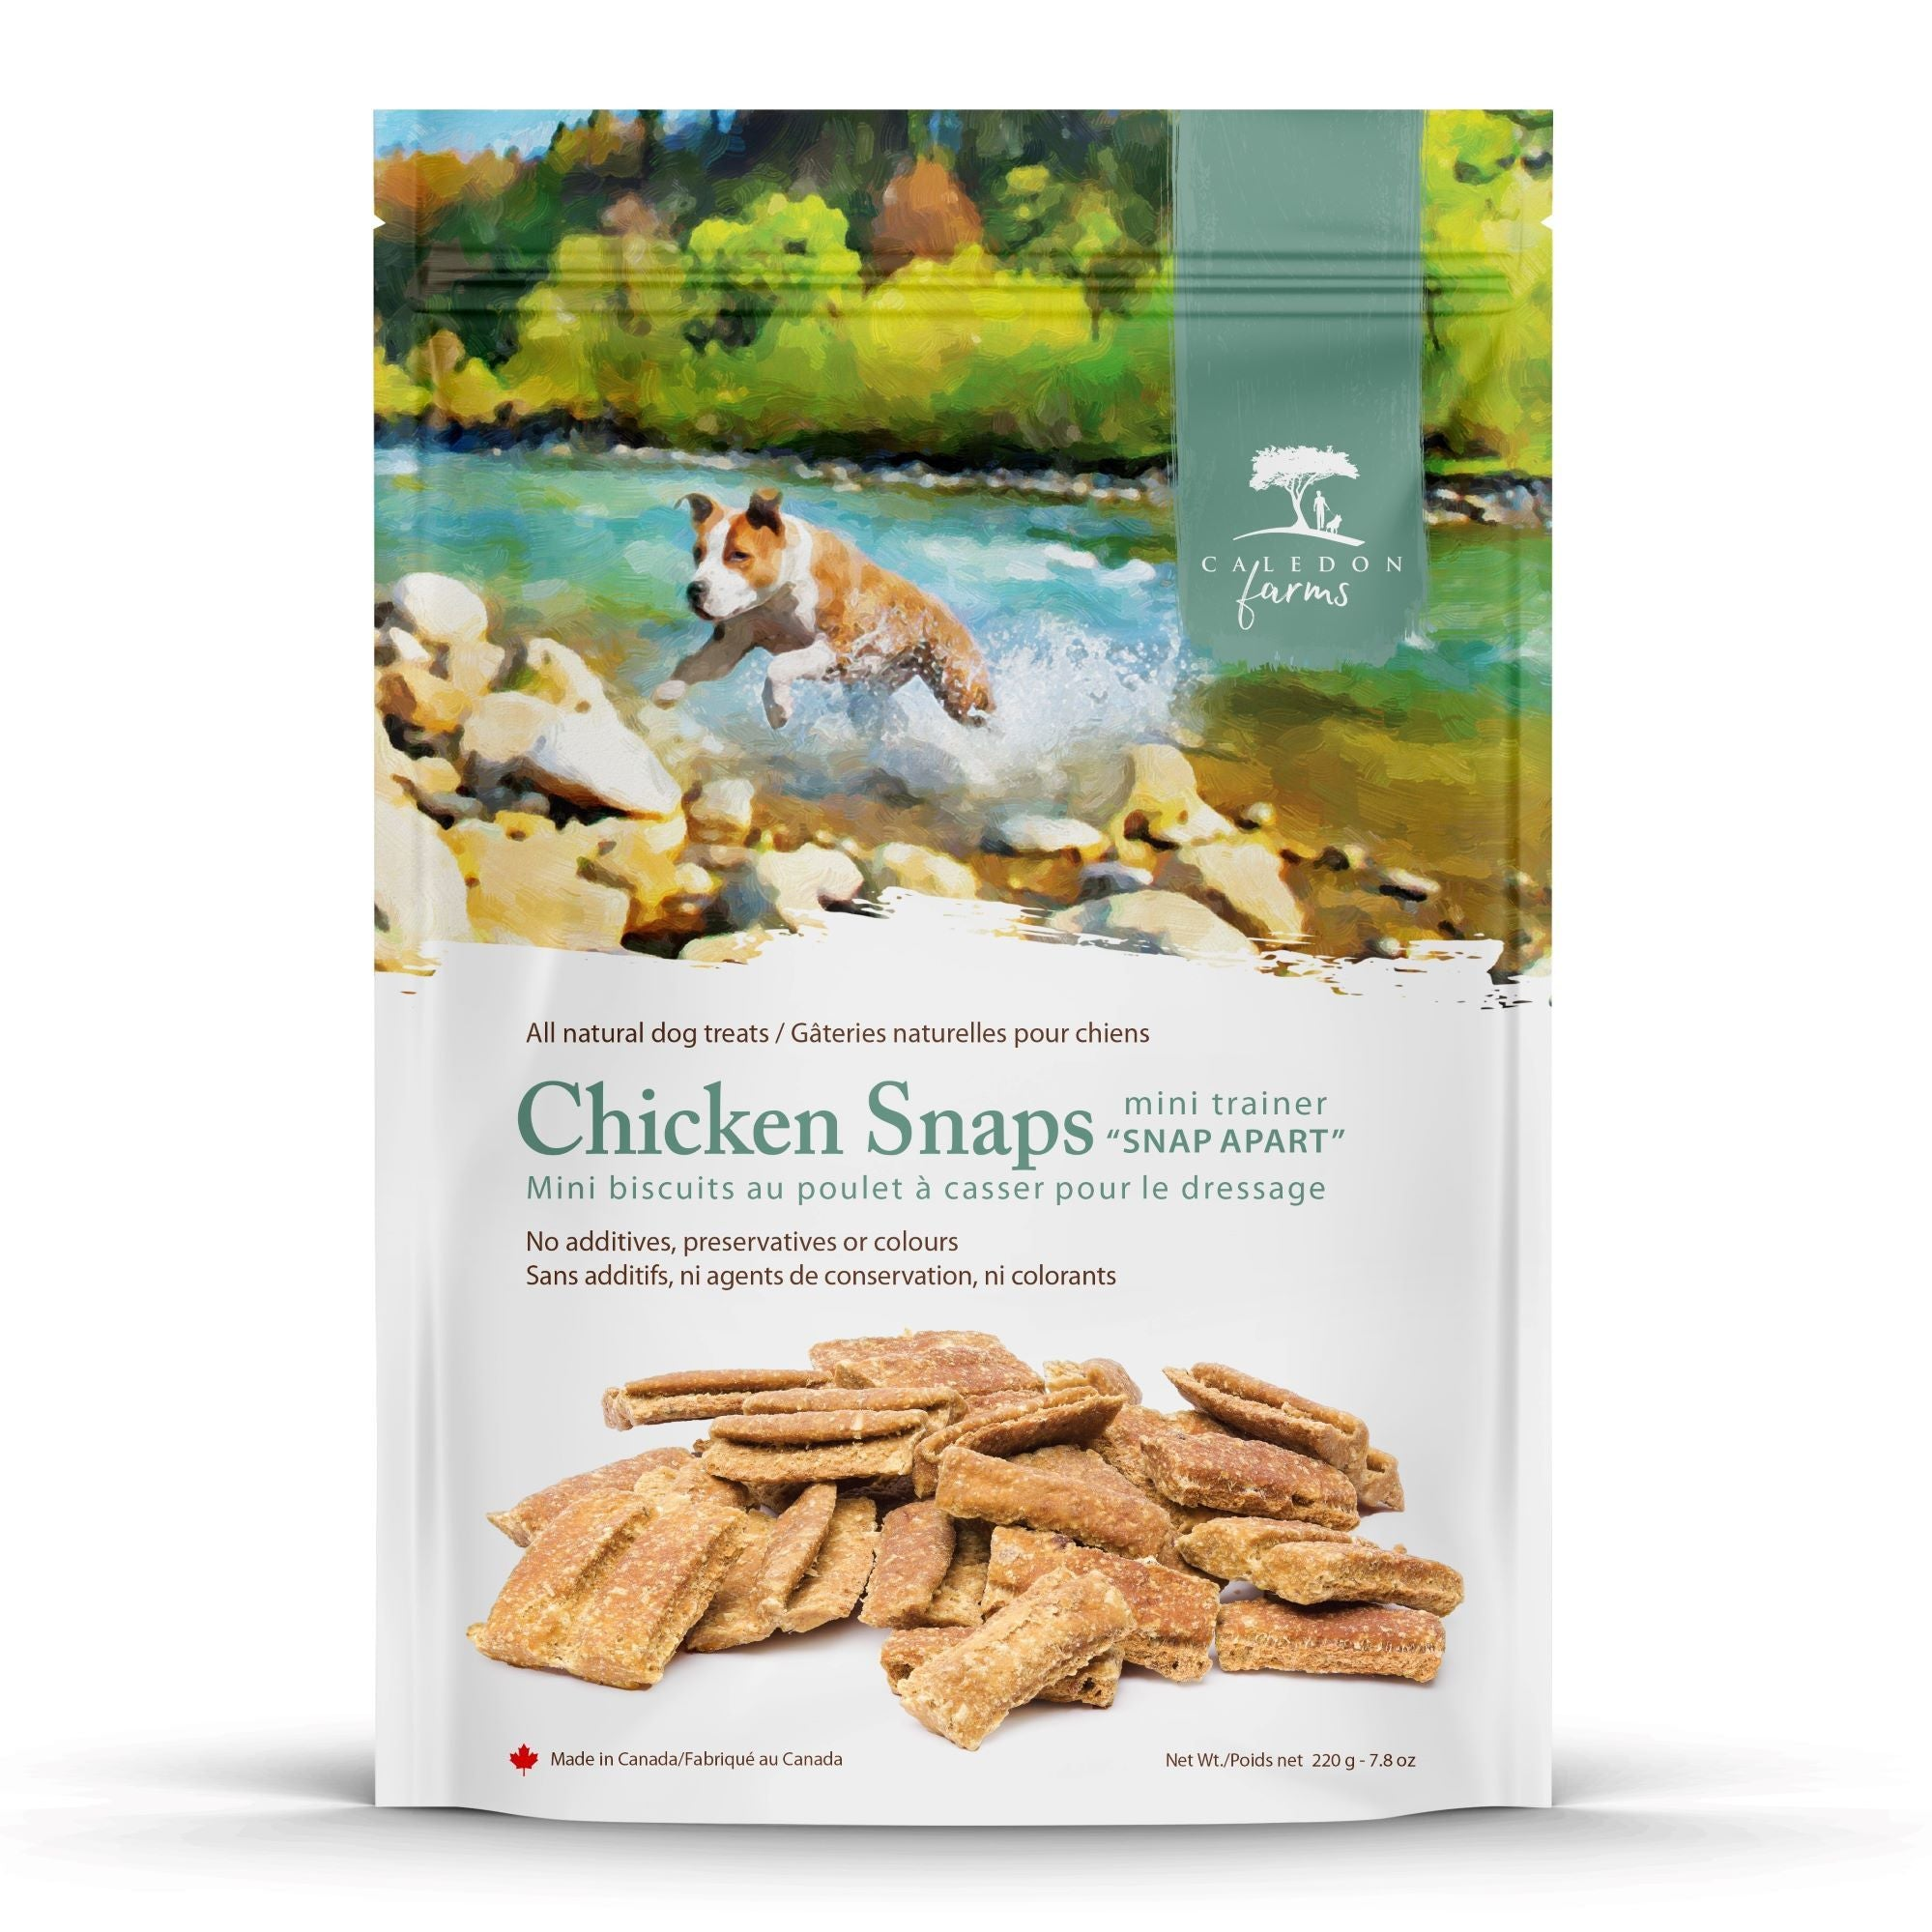 Chicken Snaps Mini Trainers Dog Treats Bag Front